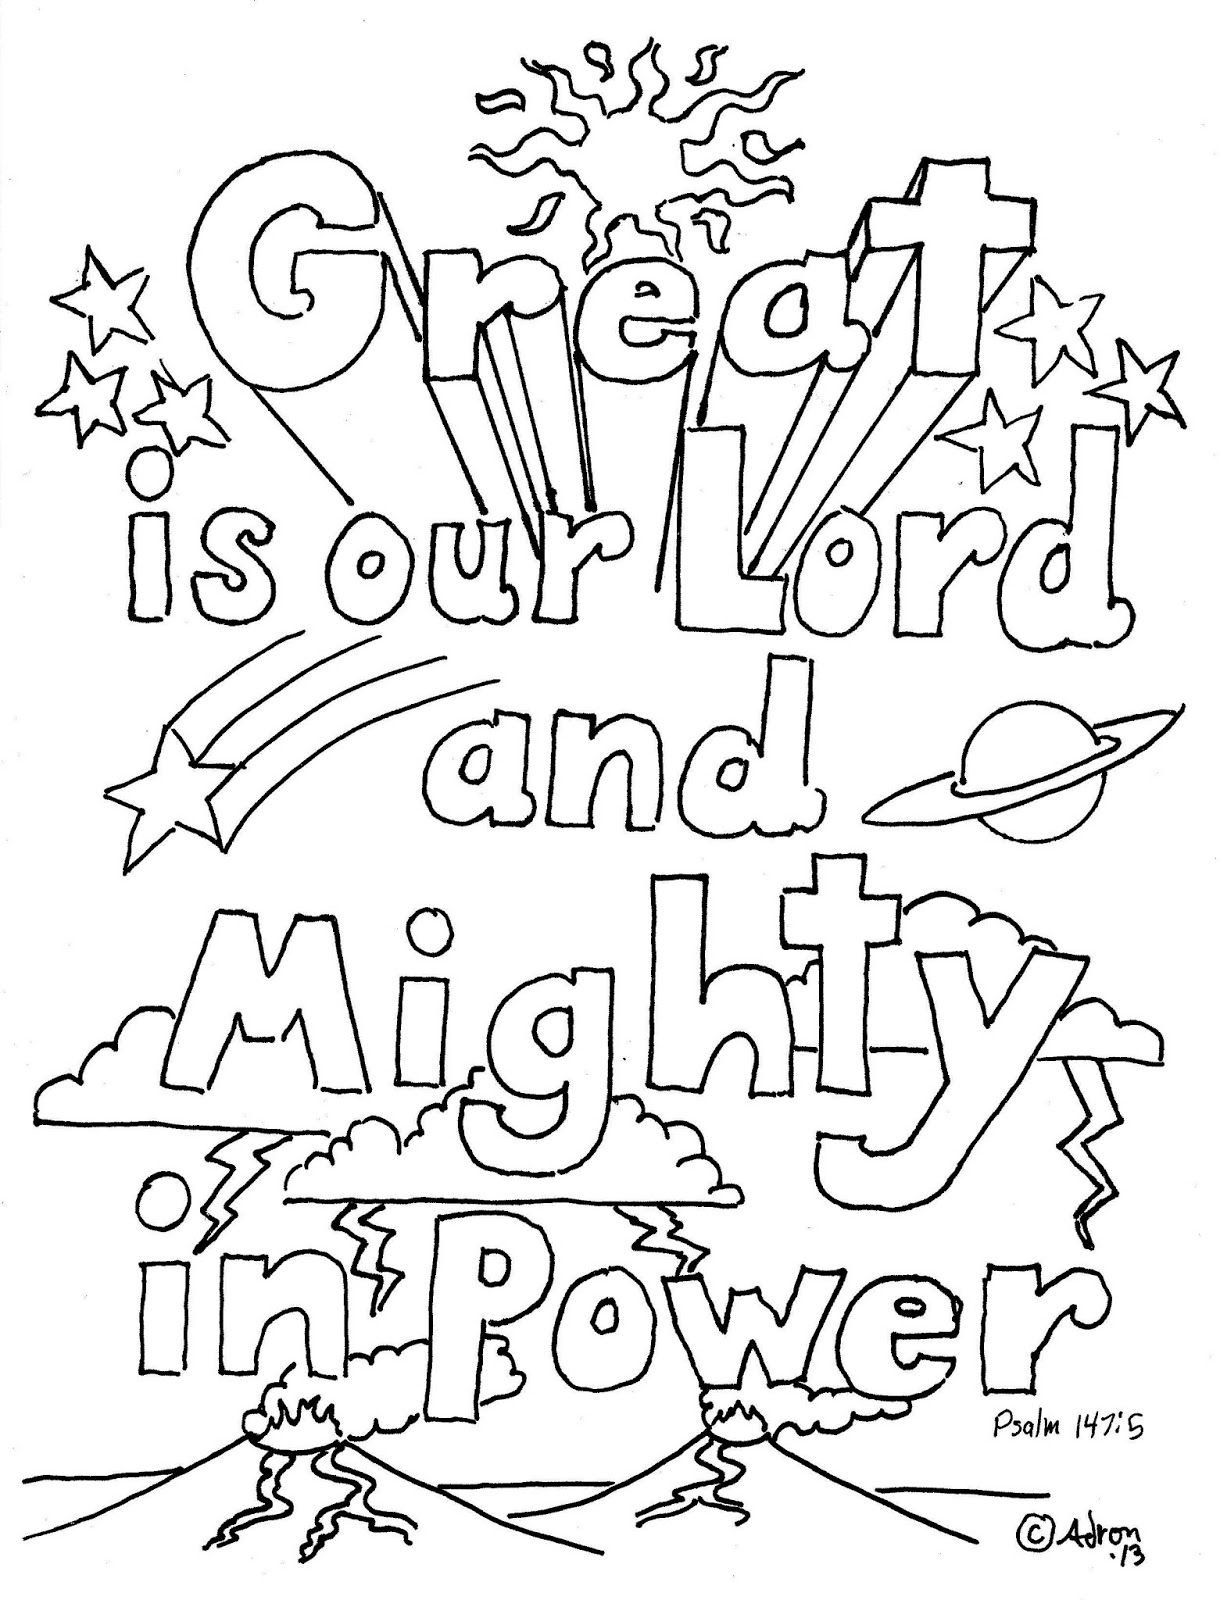 psalm 98 coloring page that means you sing and make noises to the lord from the coloring psalm 98 page